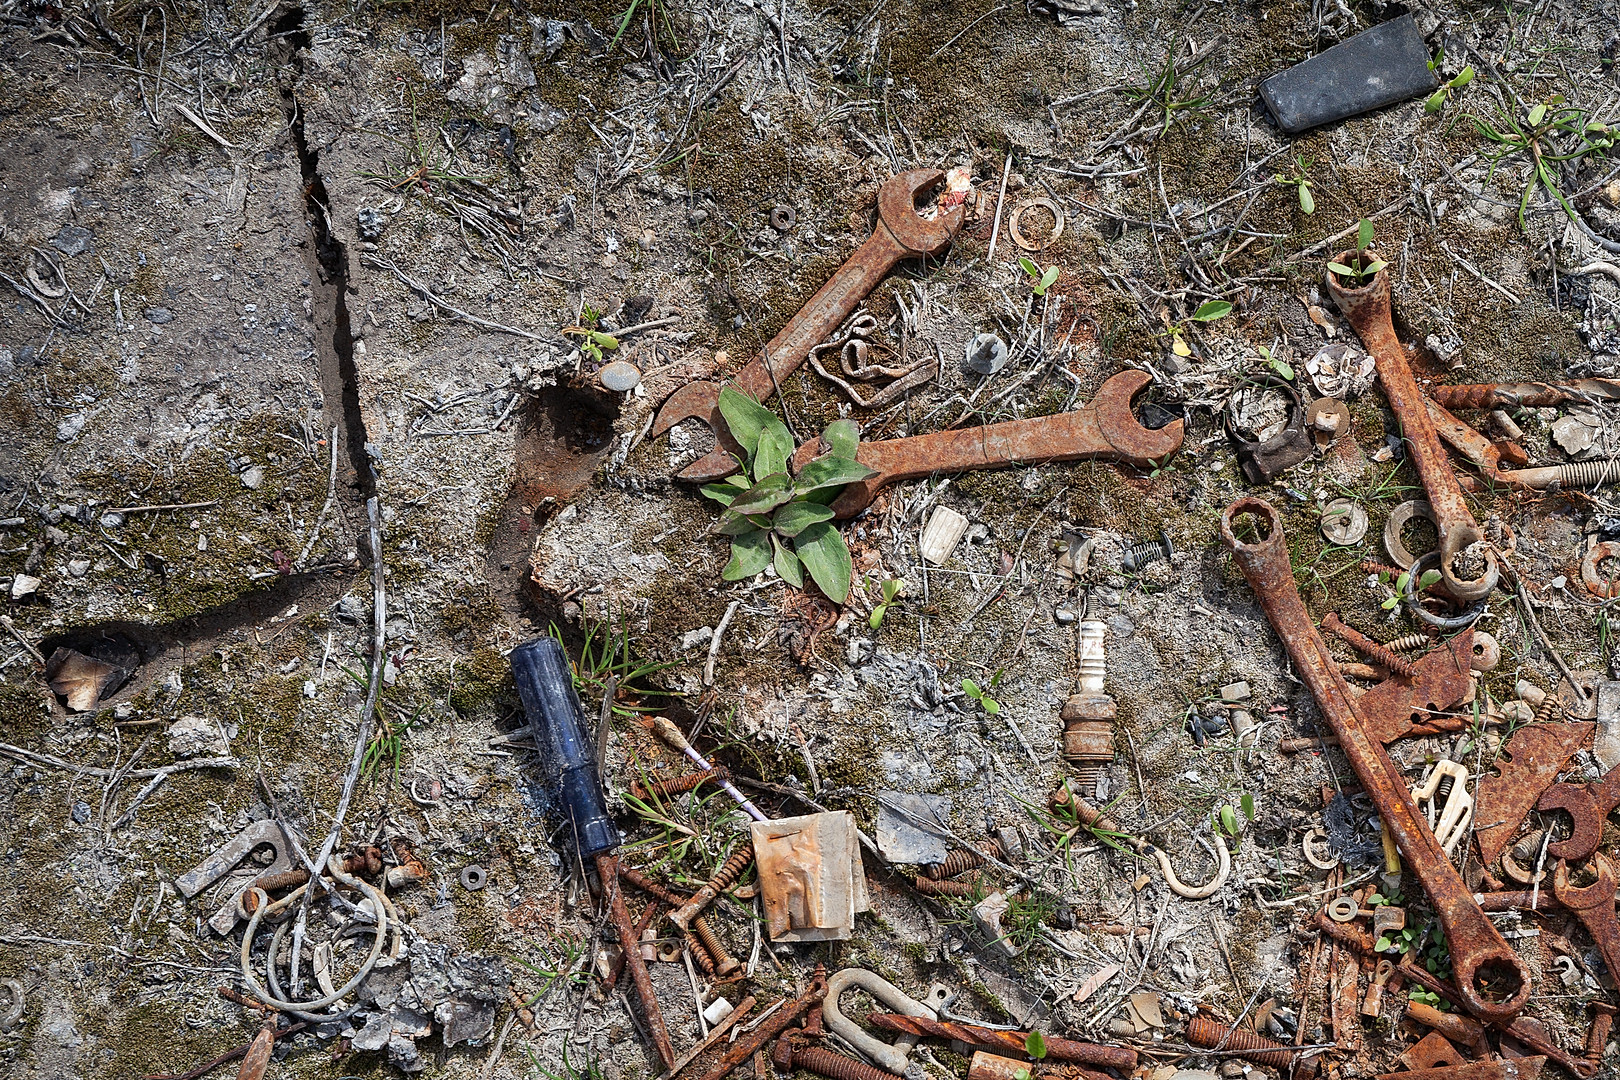 Wheel wrench impression surrounded by rusted tools